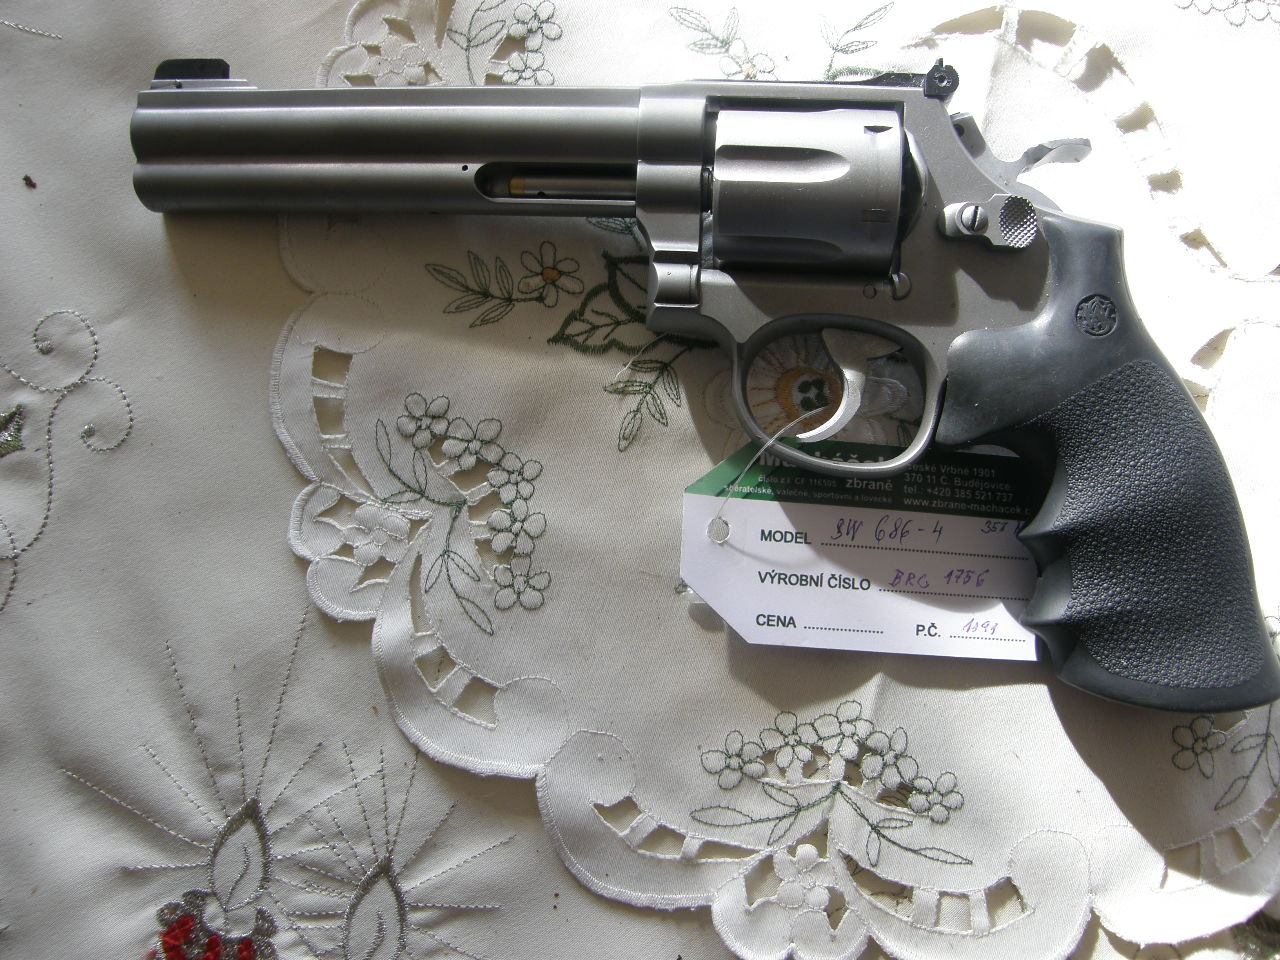 Revolver Smith Wesson Mod. 686-4 v.č.BRC 1756 r. 357 Mag.